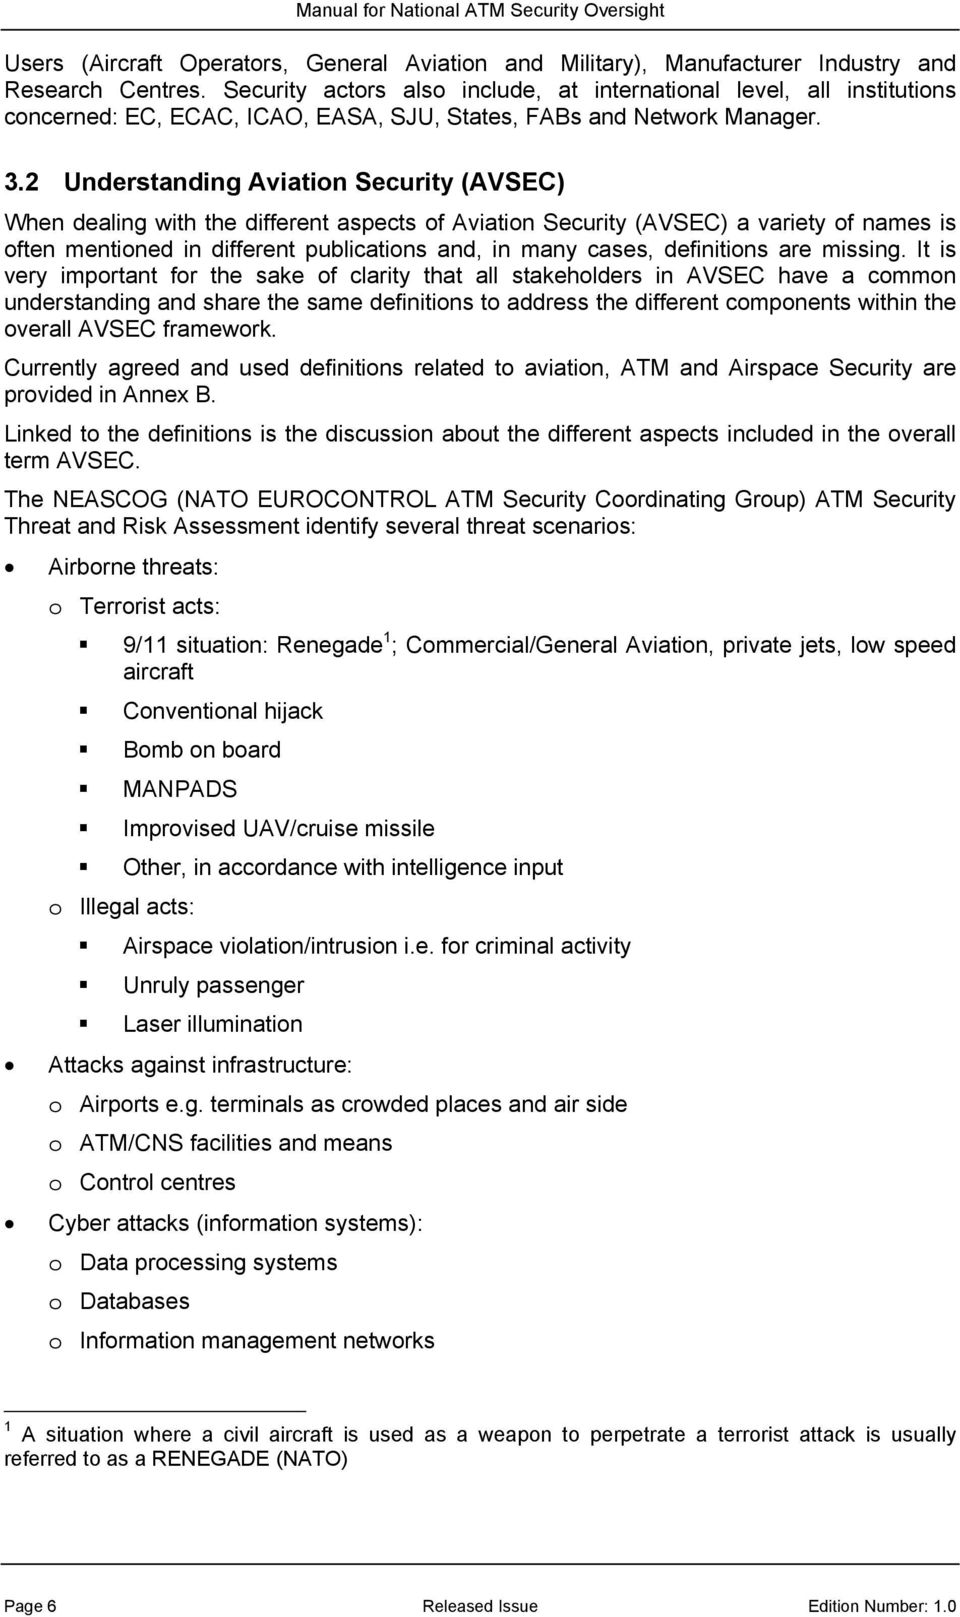 2 Understanding Aviation Security (AVSEC) When dealing with the different aspects of Aviation Security (AVSEC) a variety of names is often mentioned in different publications and, in many cases,